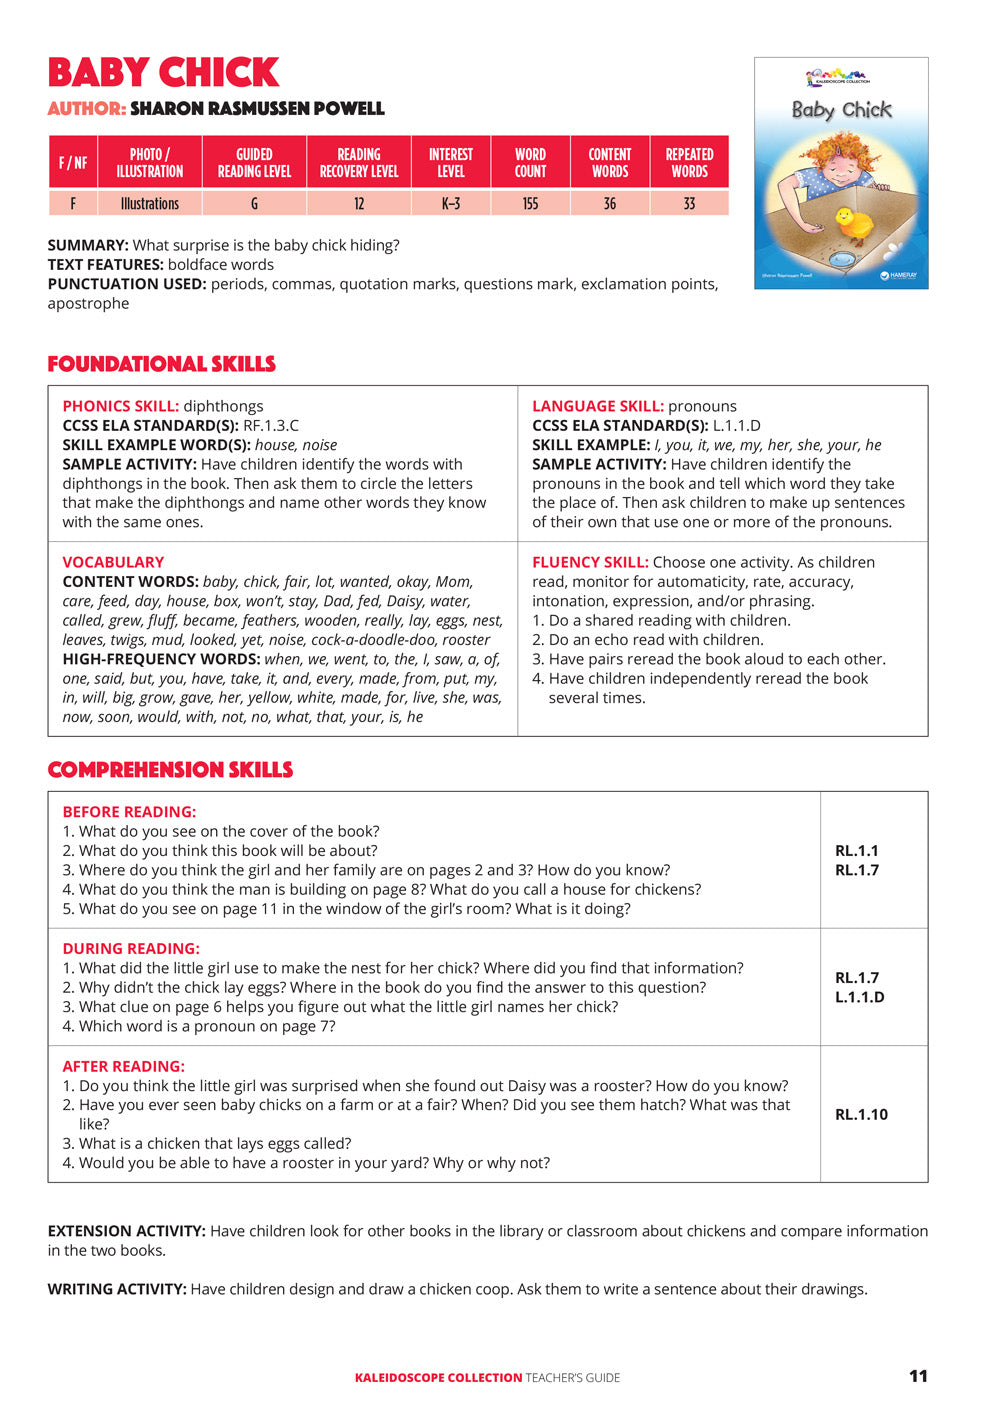 Baby Chick Teacher's Guide